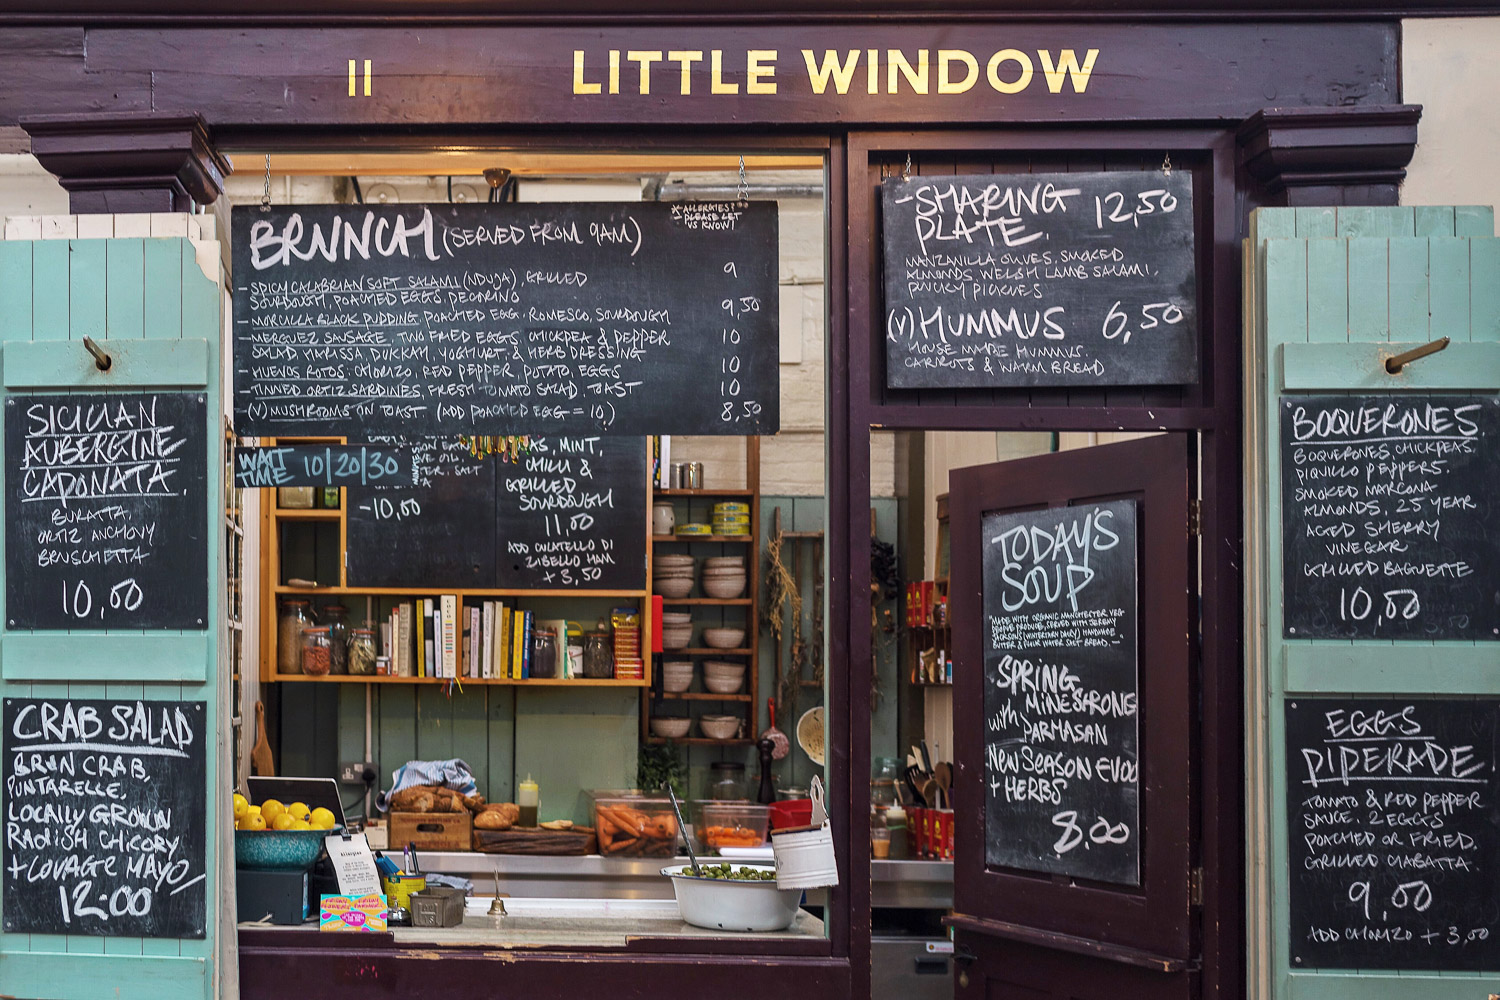 Little Window at Altrincham Market near Manchester, England.  The cutest storefront!